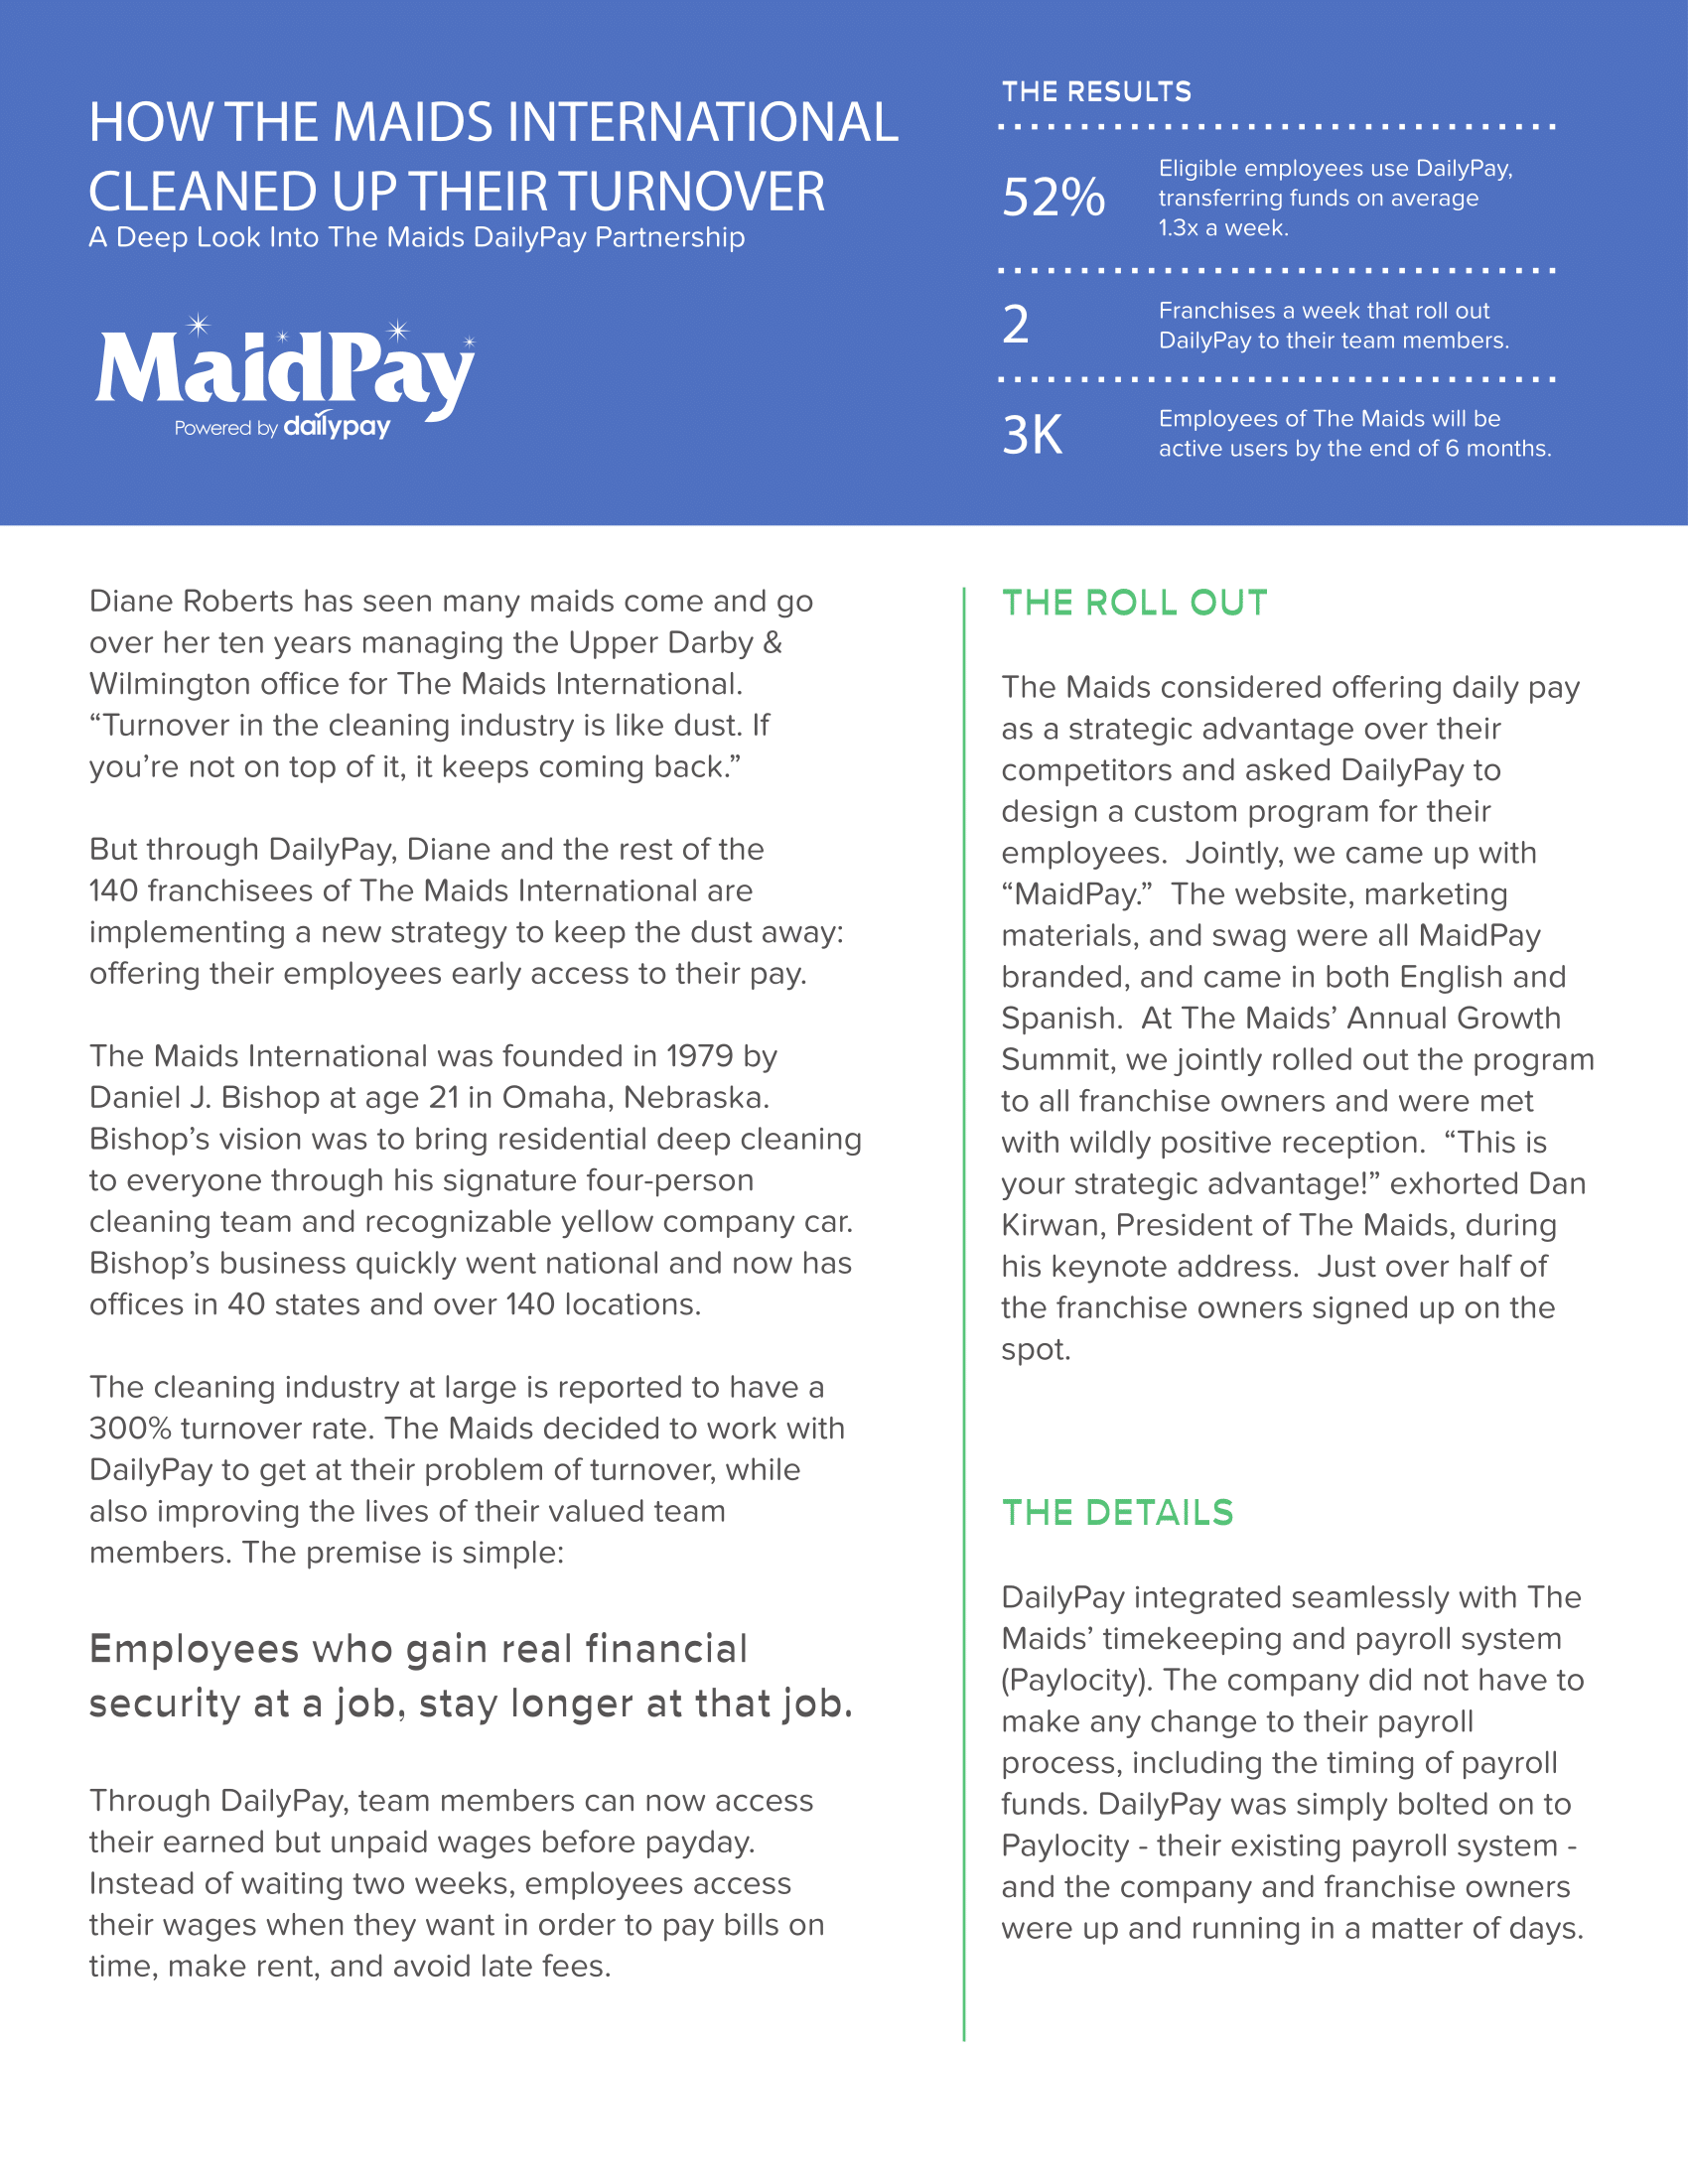 TheMaids_Case Study-1.png